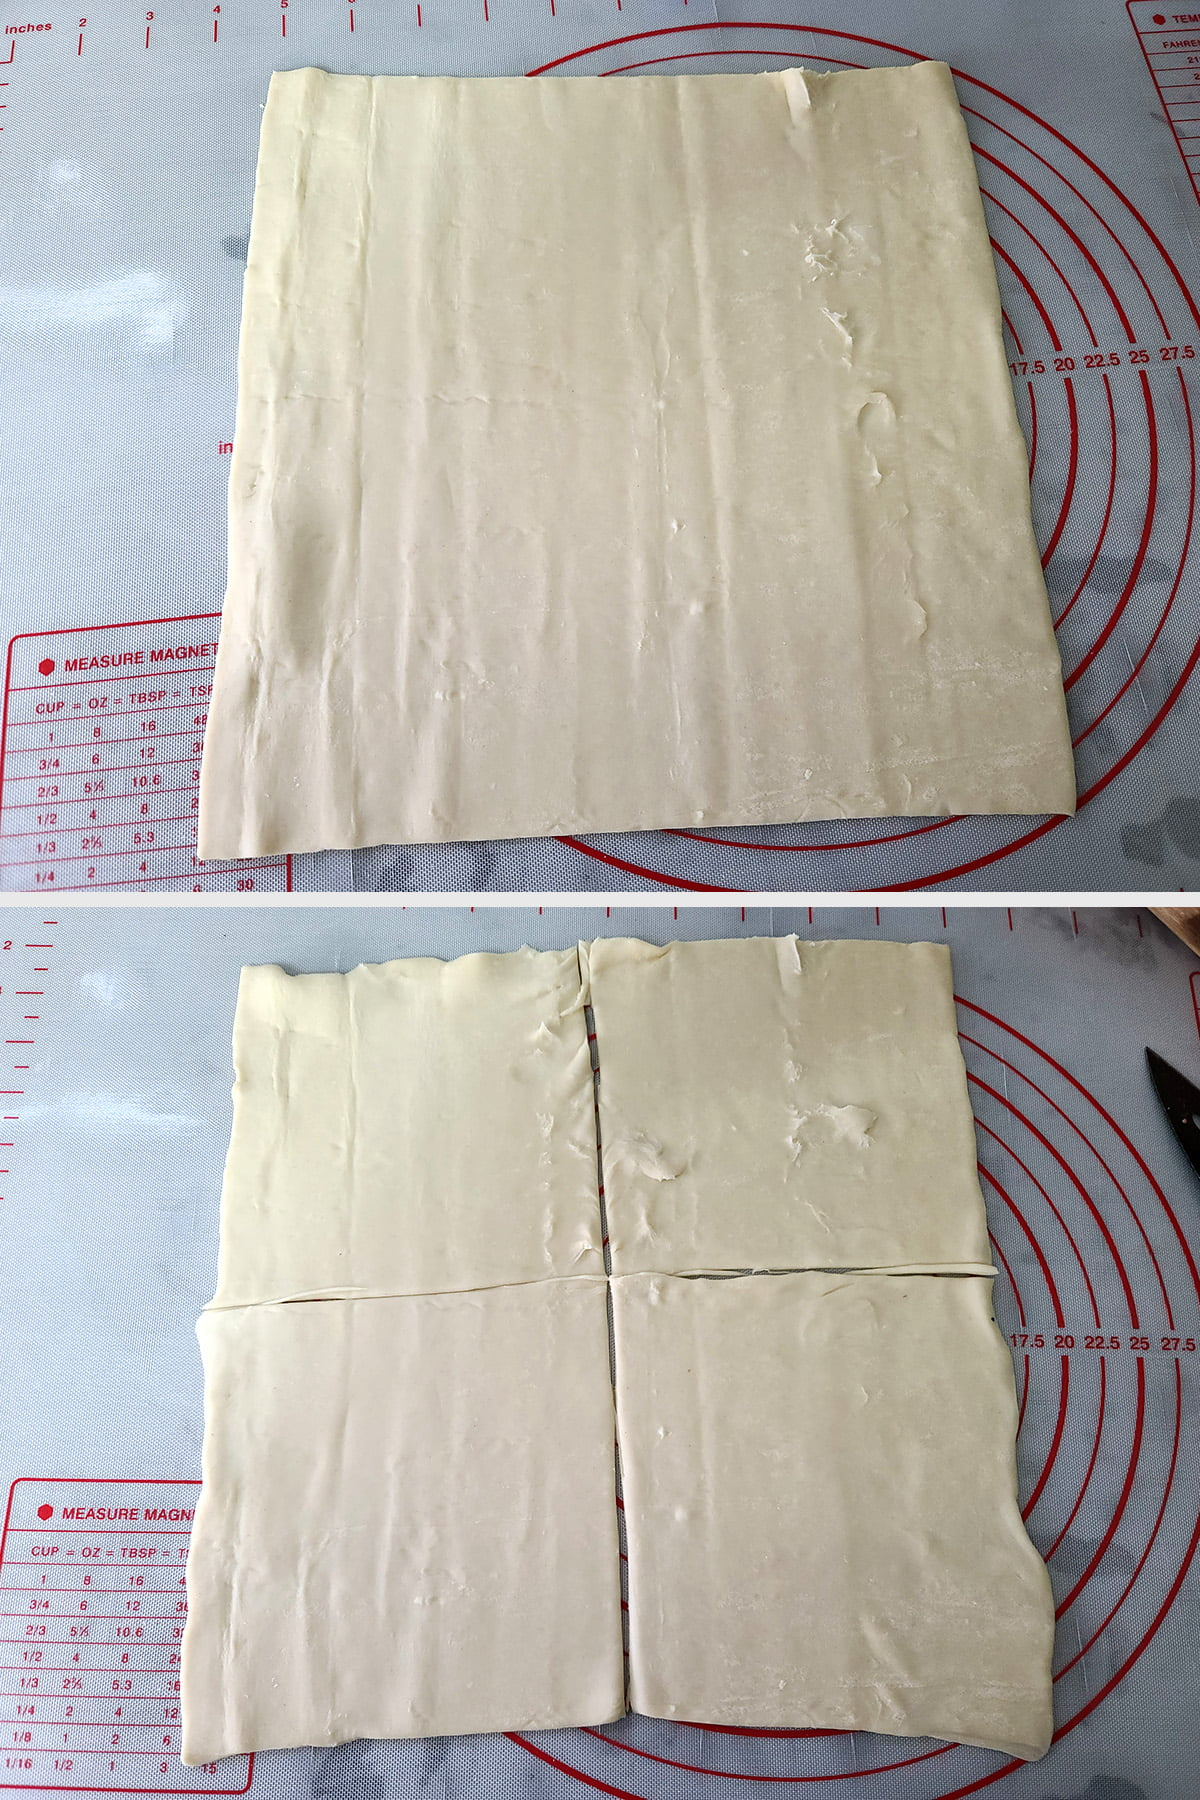 A two part compilation image showing a whole sheet of puff pastry, then the same sheet cut into 4 pieces.